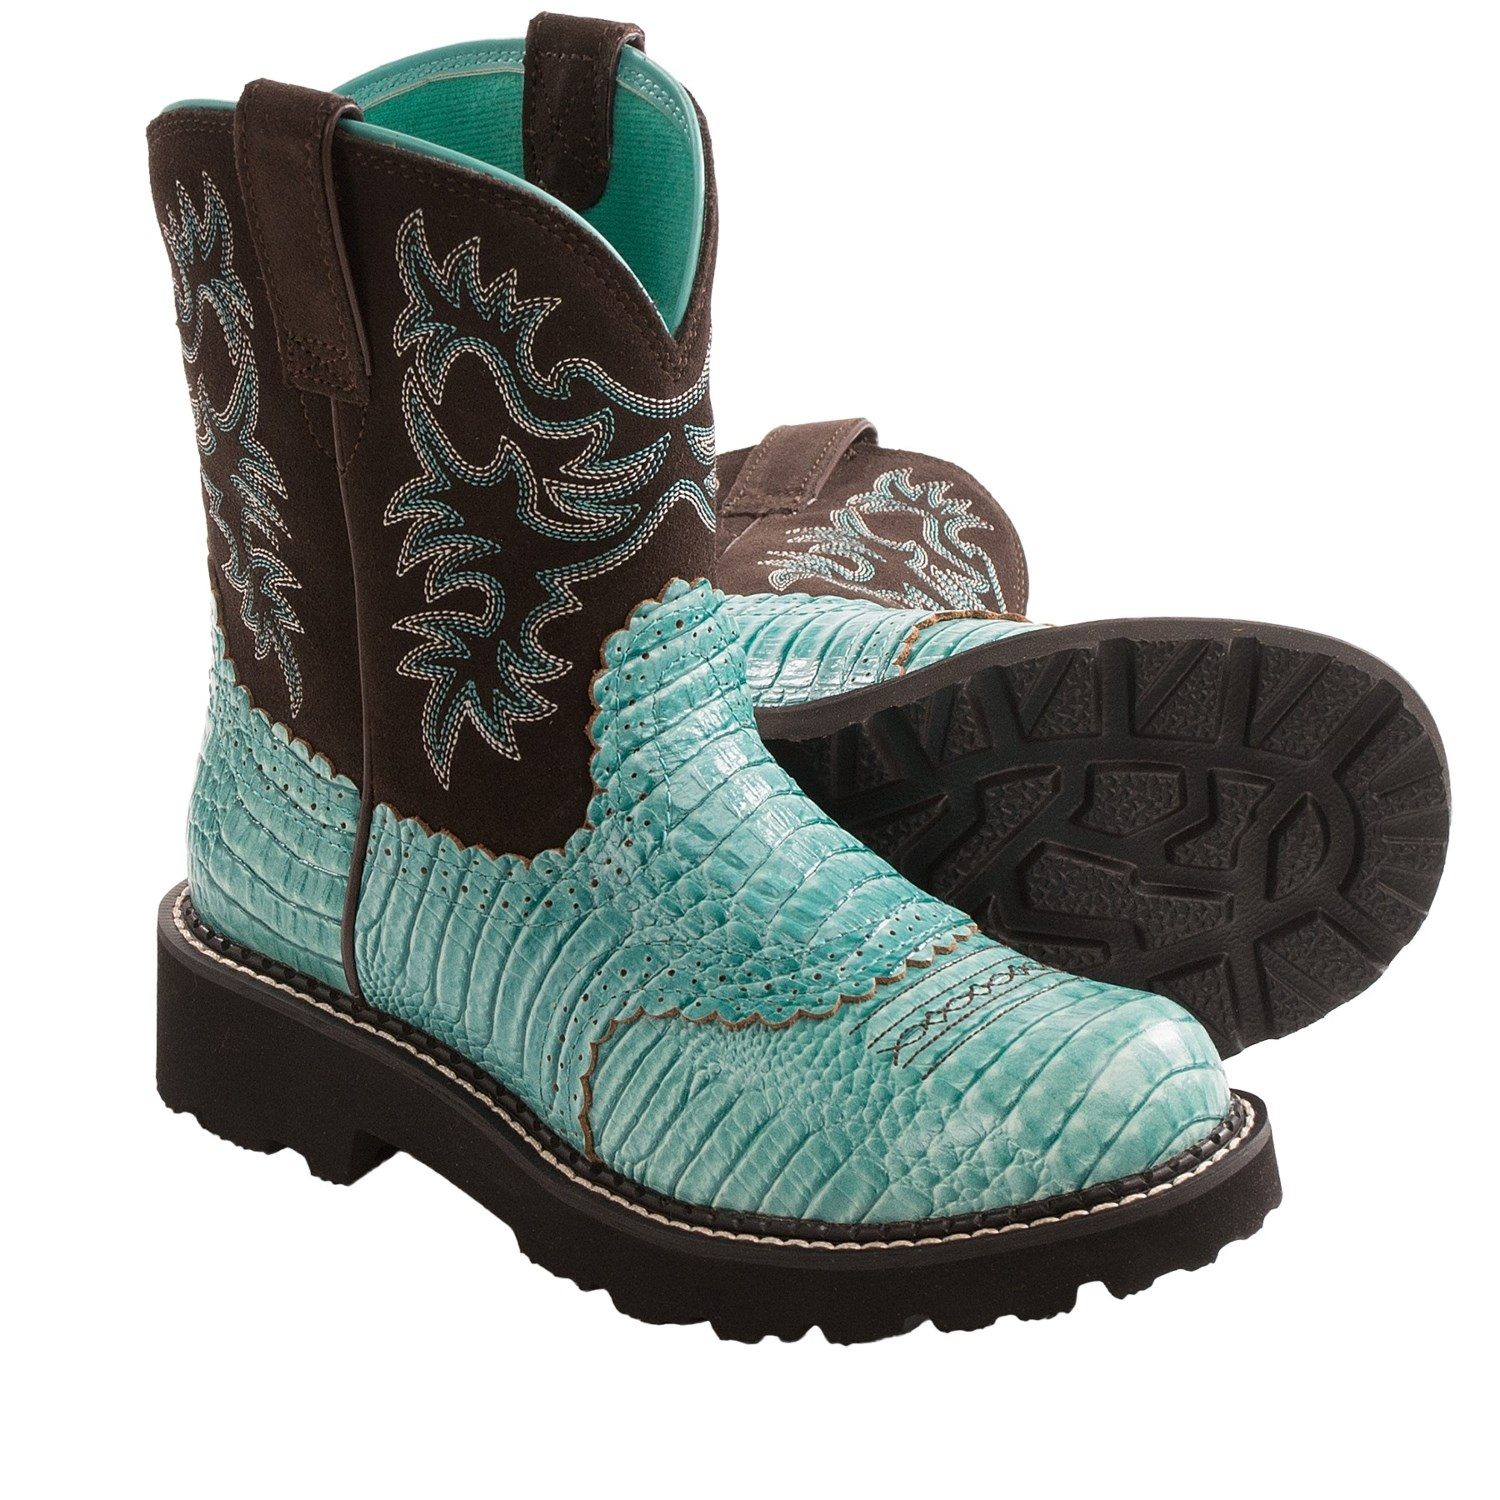 Ariat Fatbaby Gator Print Cowboy Boots (For Women) 8982R ...